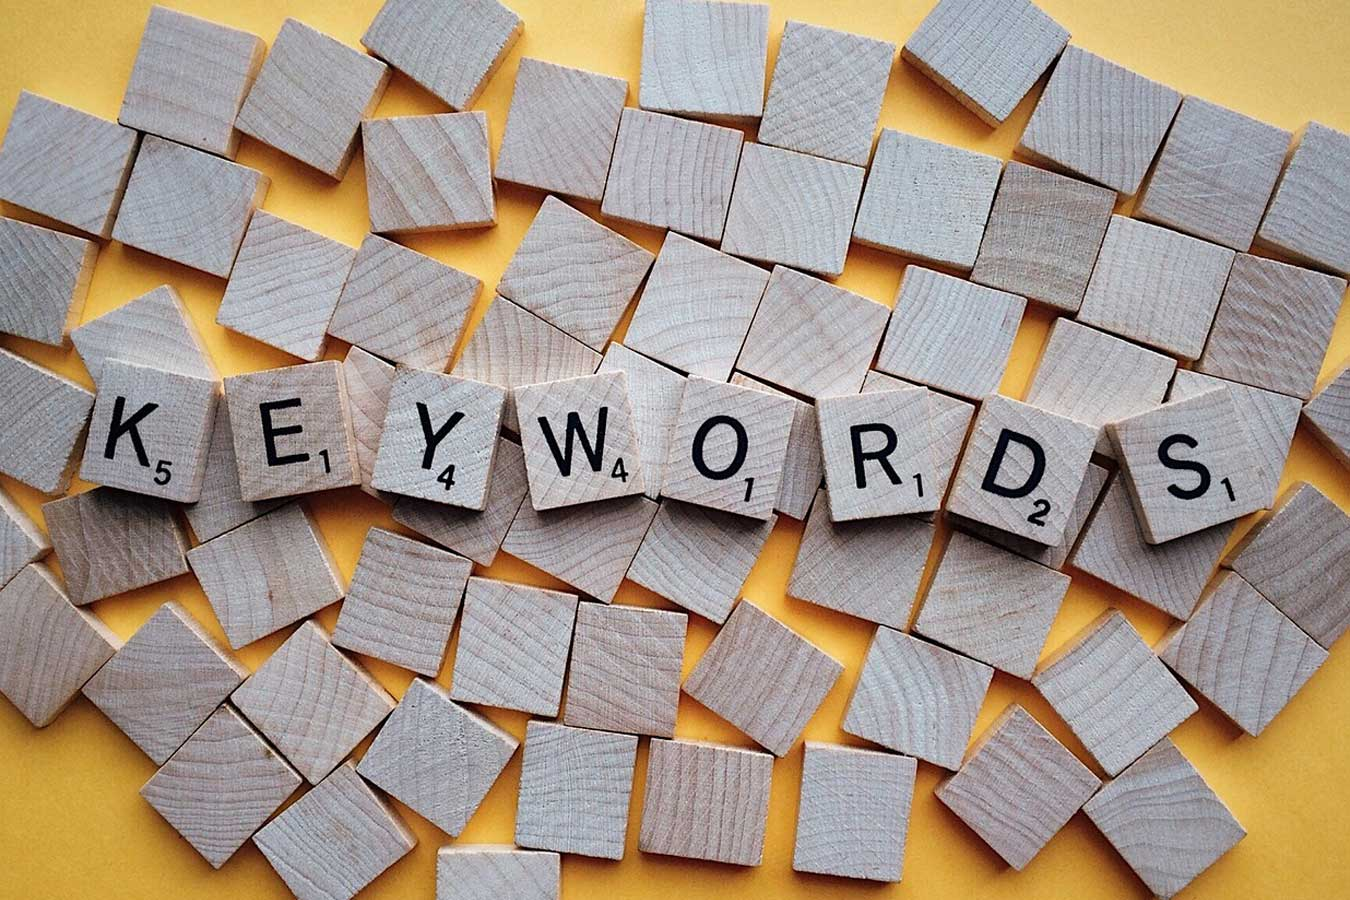 Keyword research tools 2018